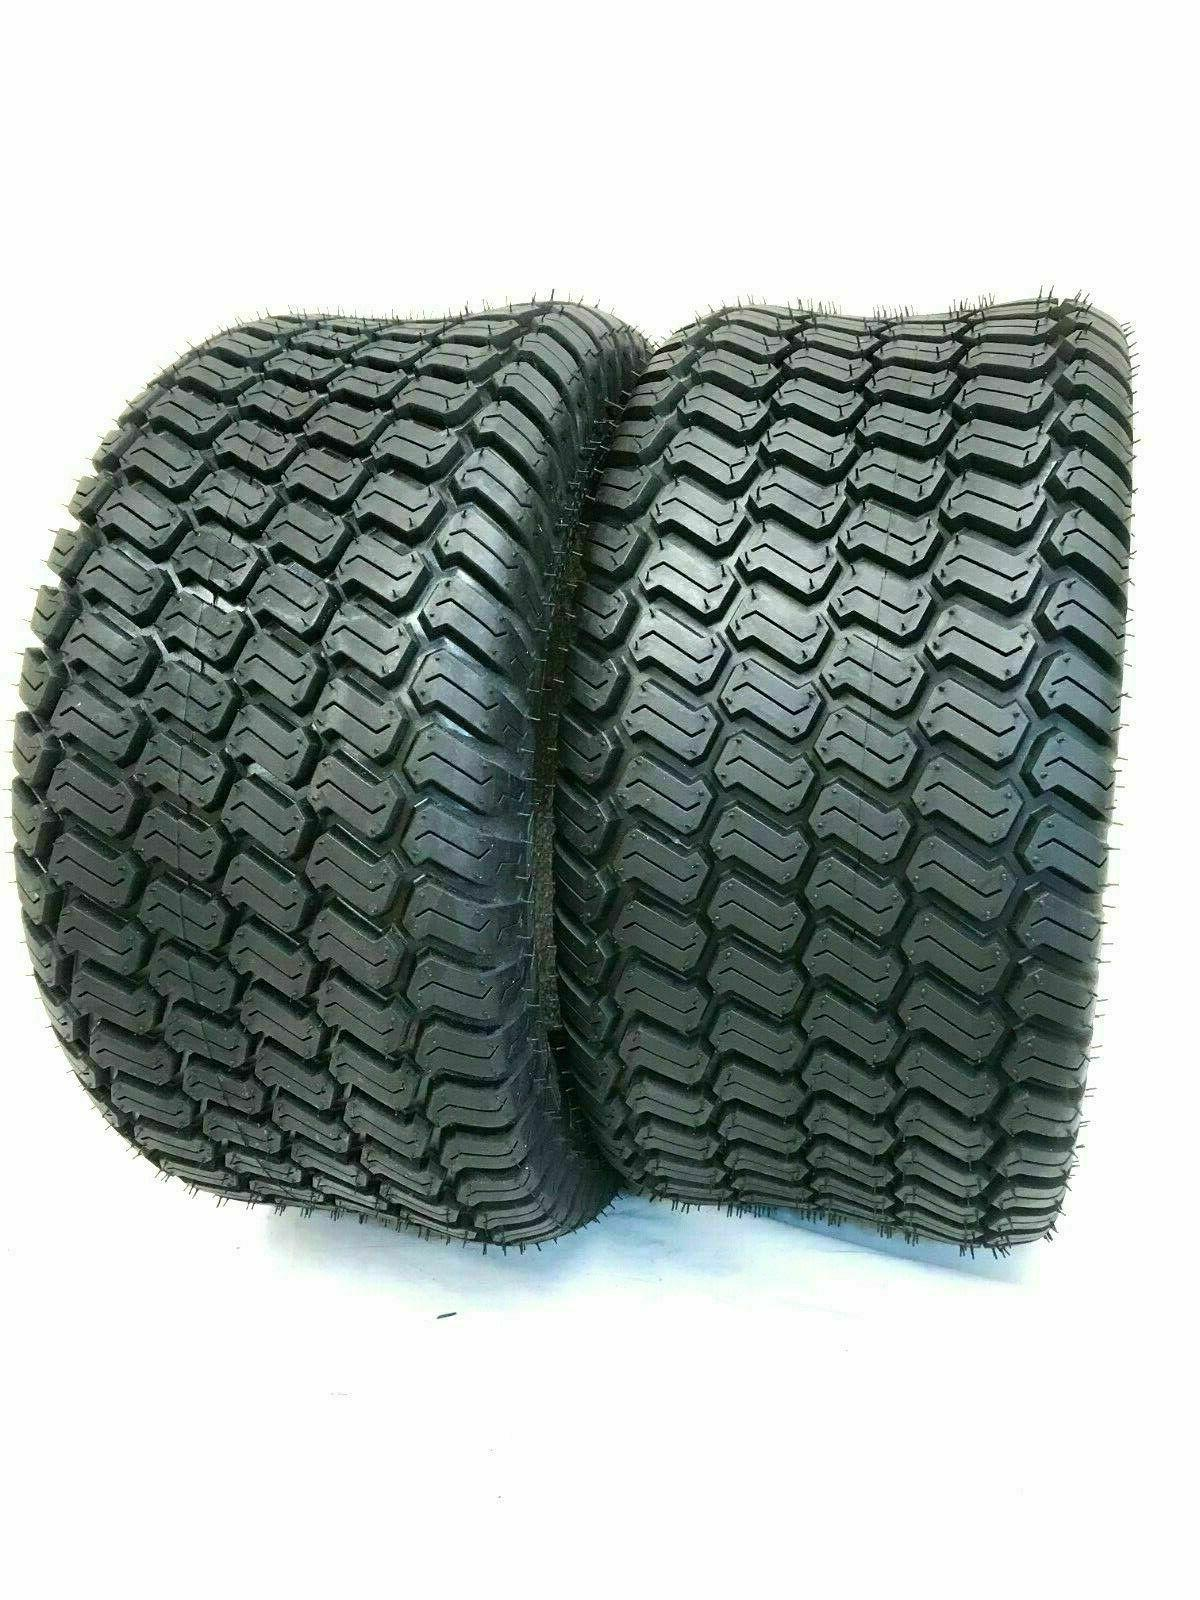 two 20x10 00 8 4 ply tubeless